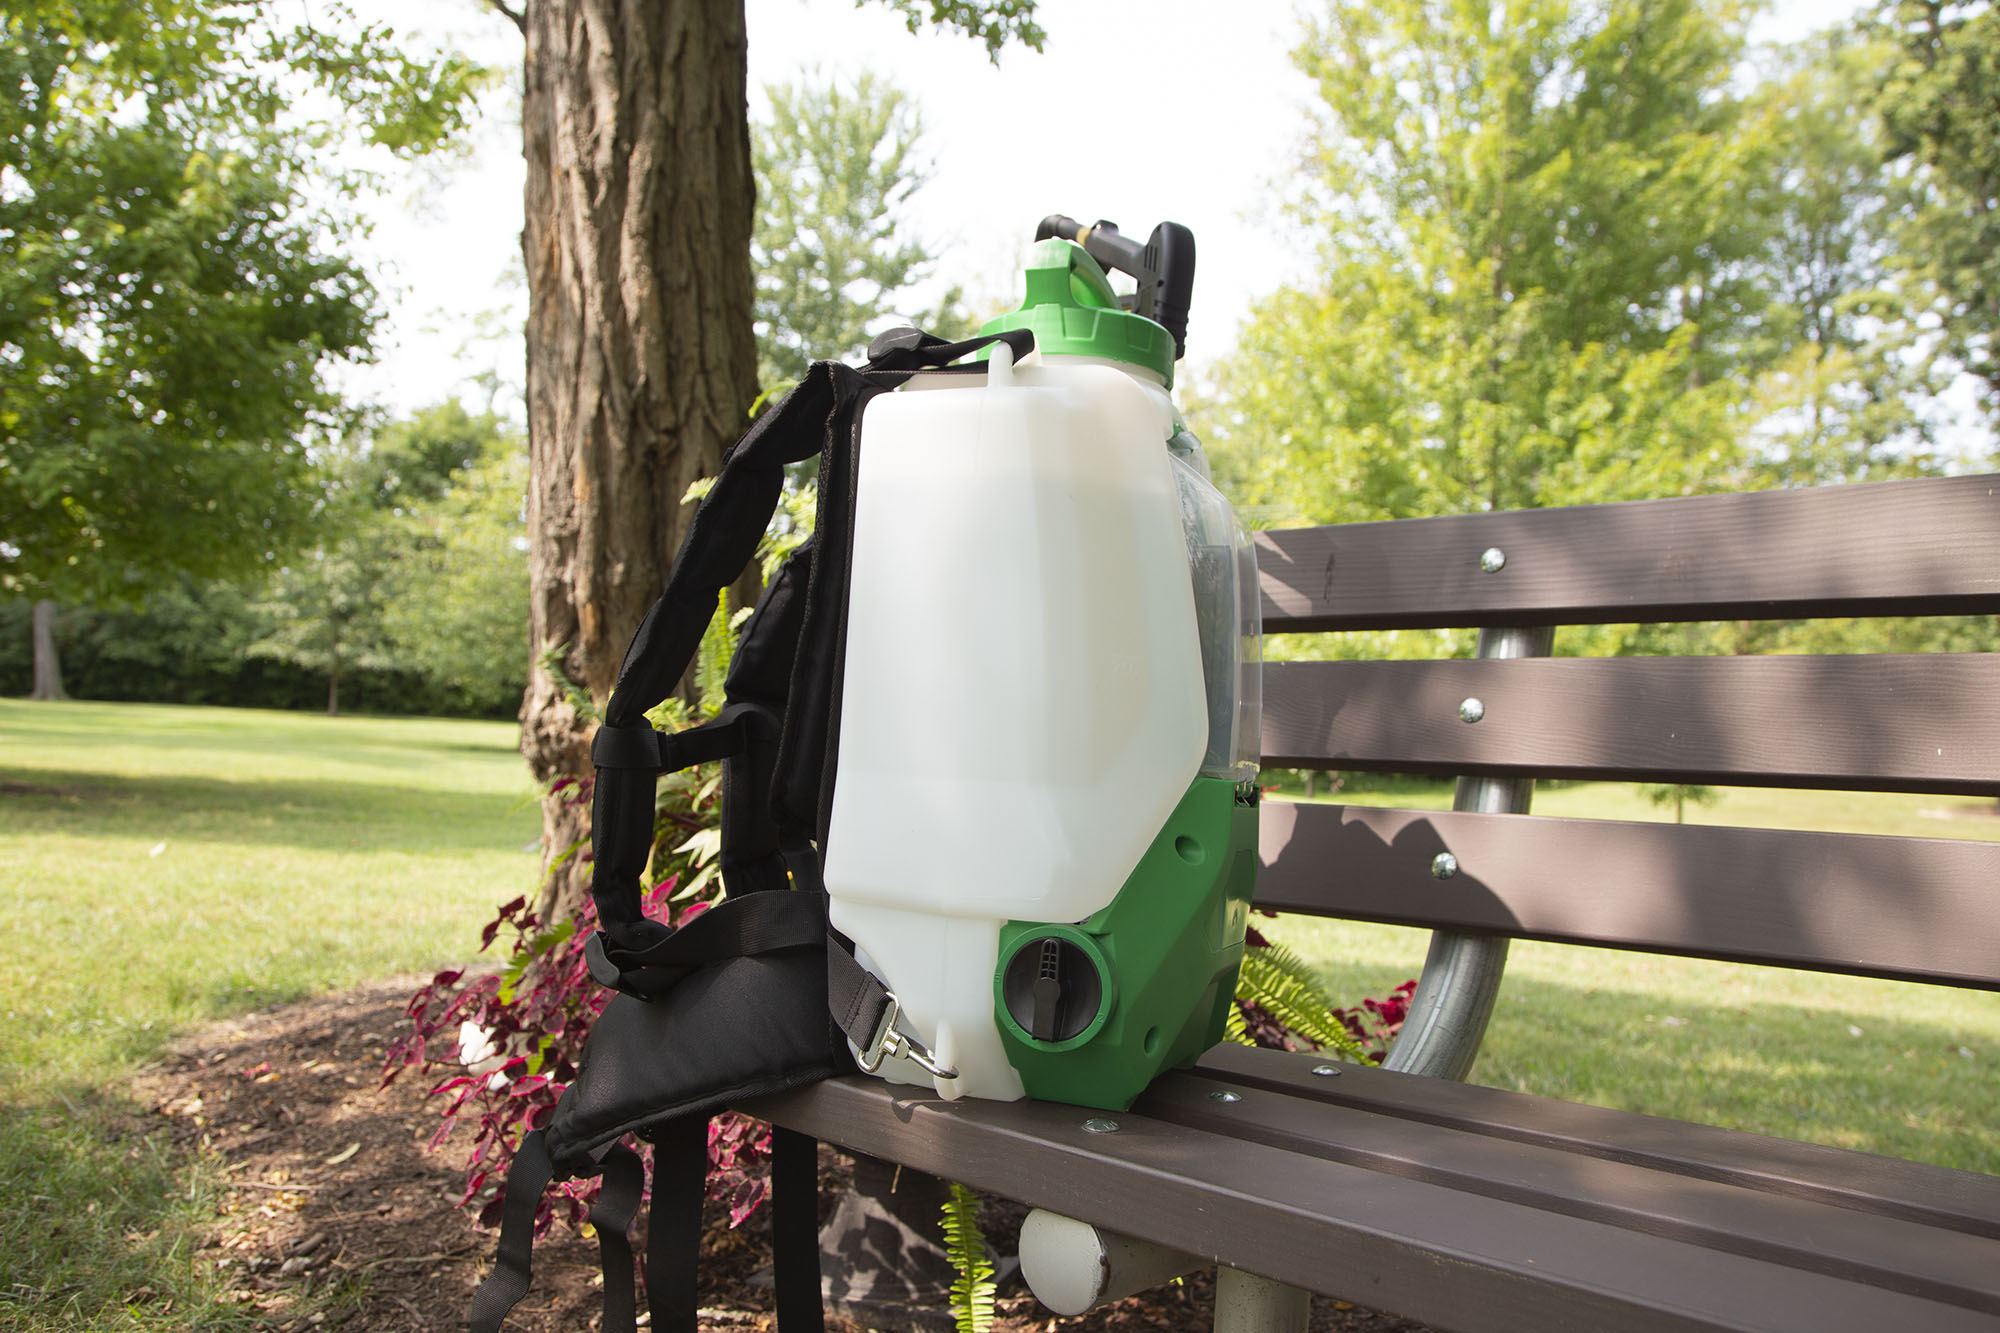 FlowZone Typhoon 2.5 backpack sprayer on a bench in a park